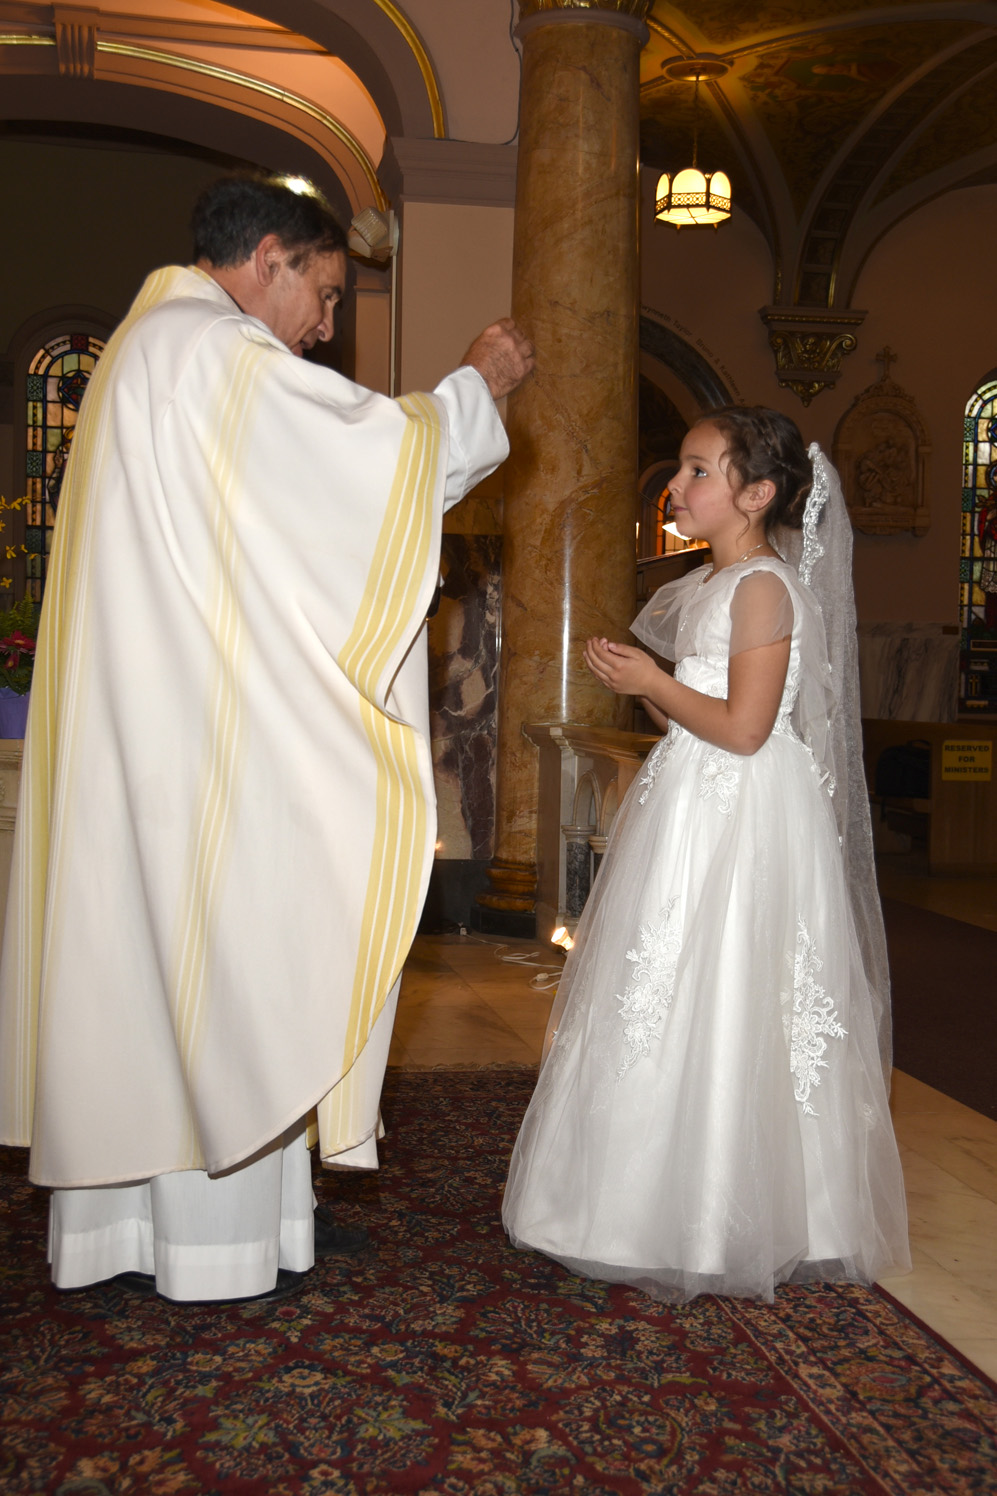 FIRST-COMMUNION-MAY-2-2021-1001001257